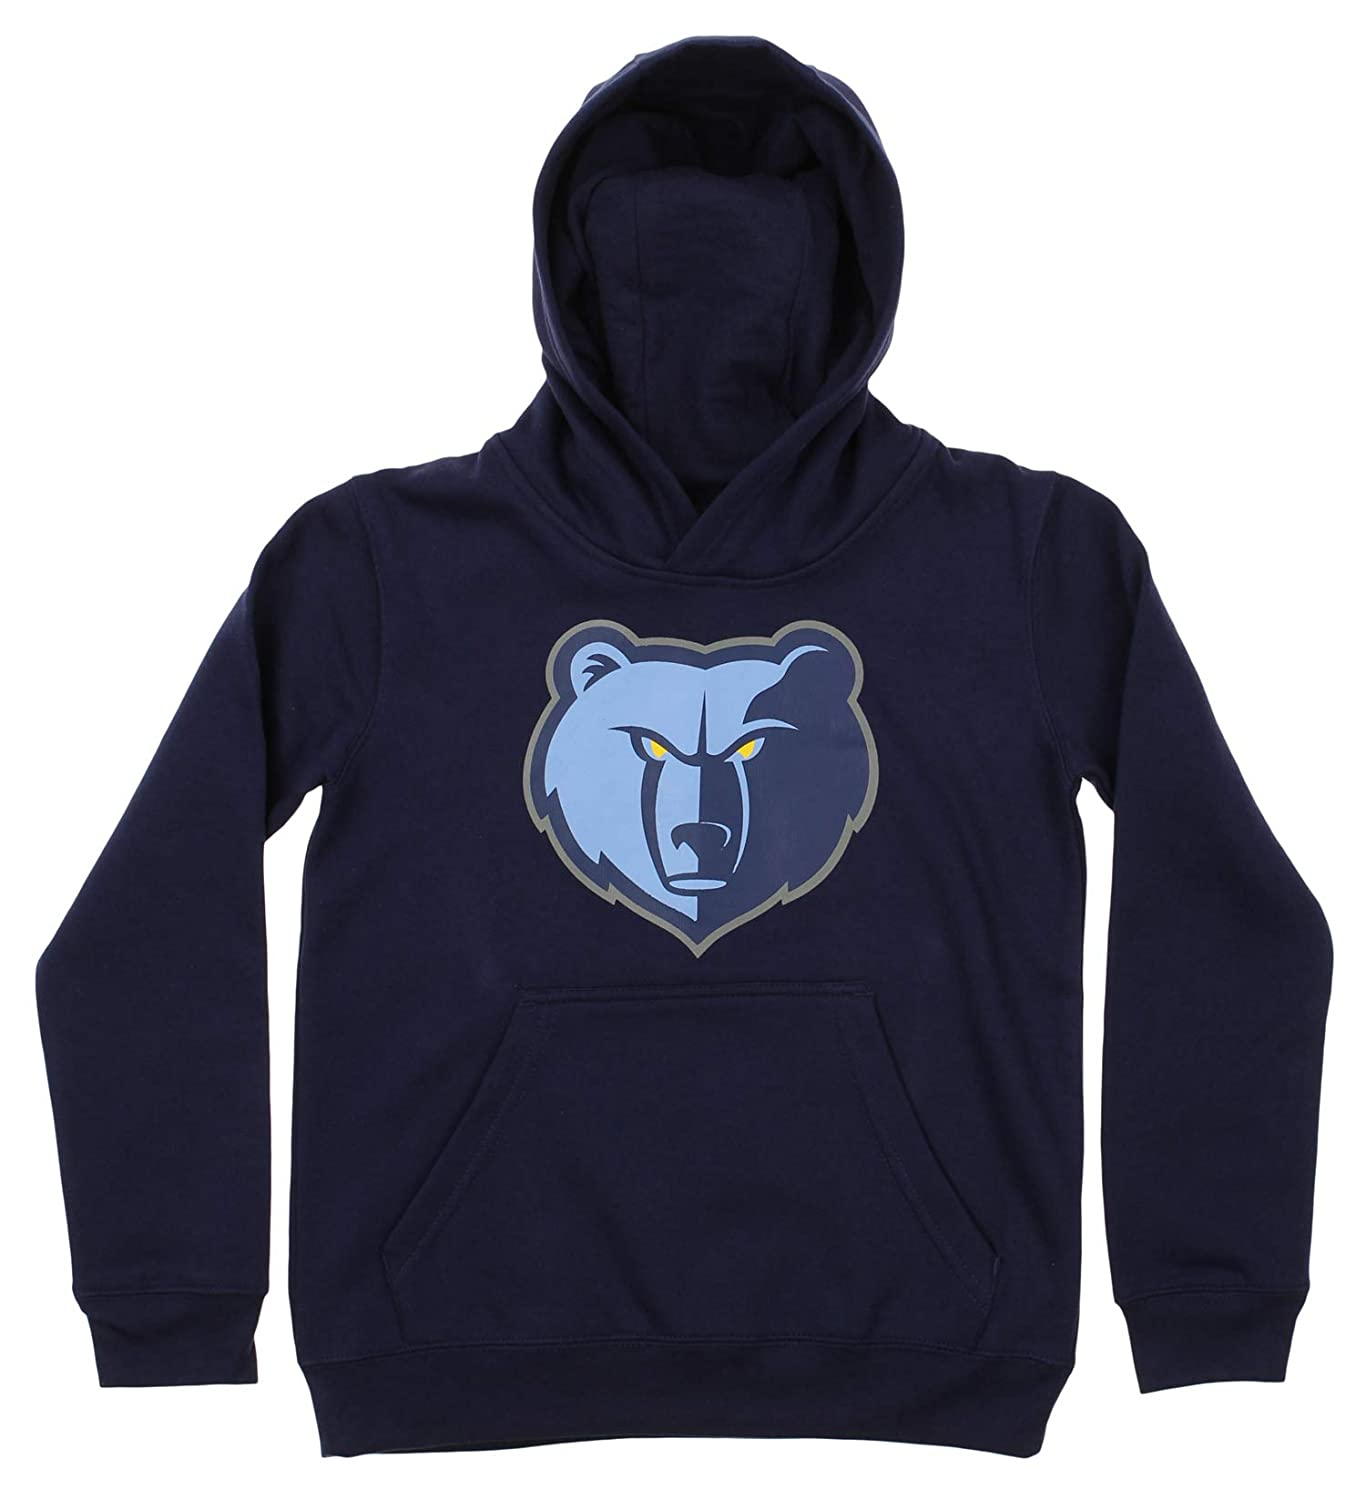 Outerstuff NBA Youth's (8-20) Team Color Fleece Hoodie, Team Variation